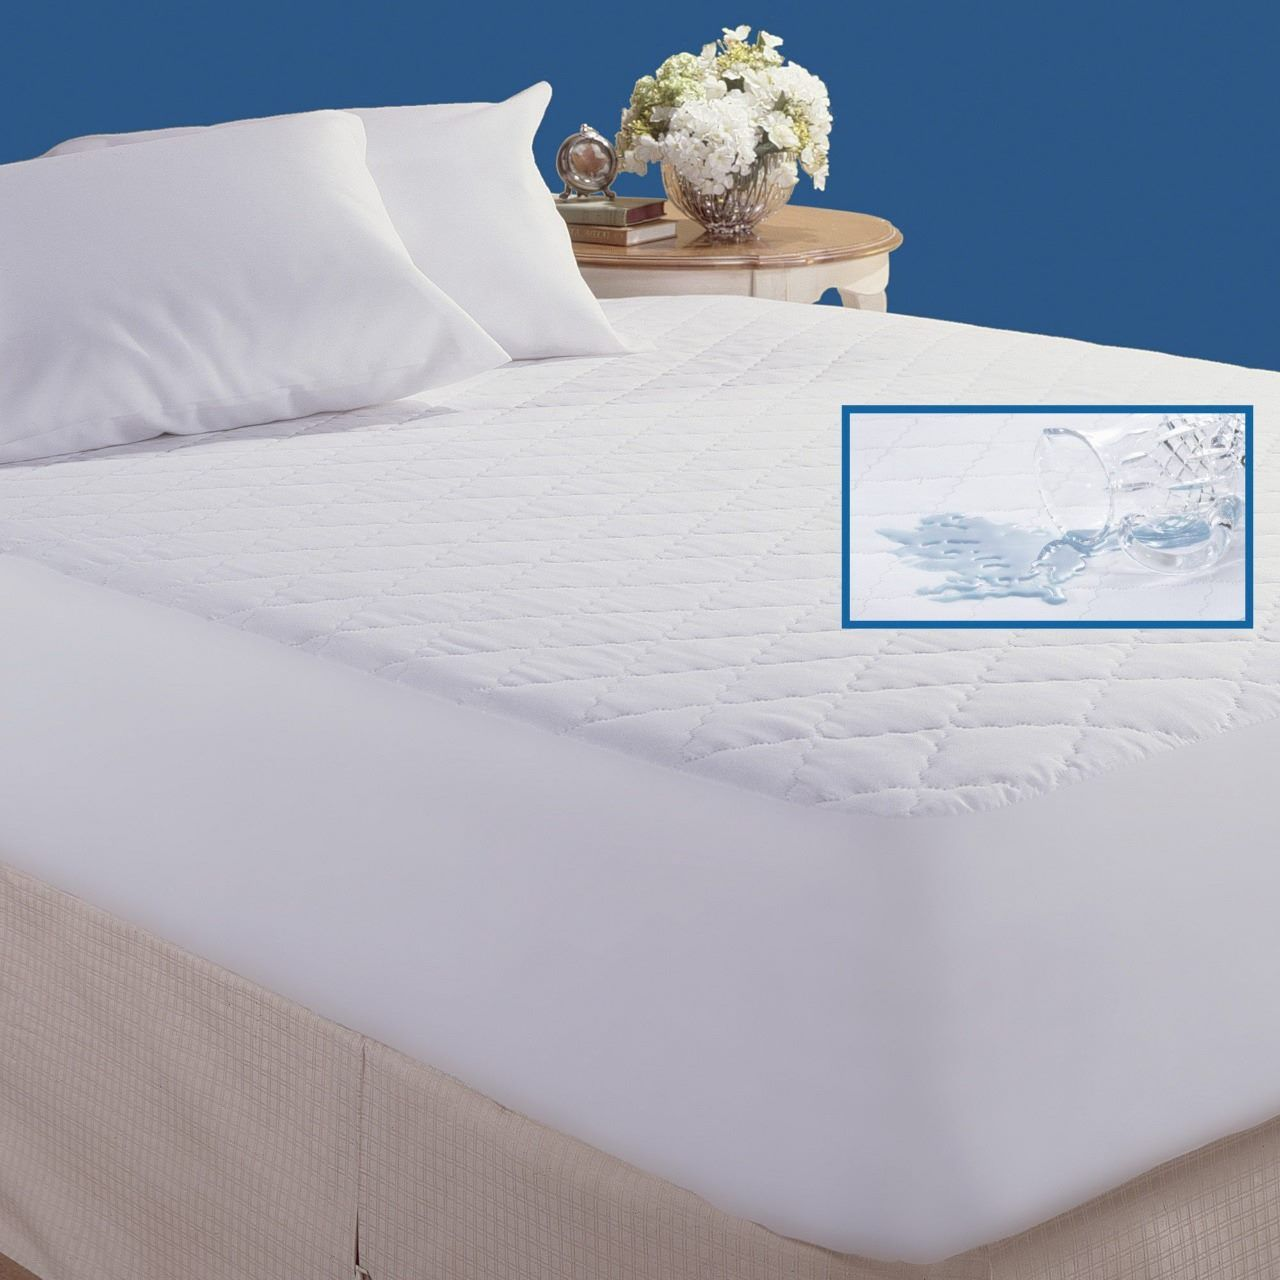 Shop At My Home Store Whats App Https Api Whatsapp Com Send Phone 923222219999 Fb Messenger M Me Myhomestorep In 2020 Waterproof Mattress Mattress Pad Cover Mattress